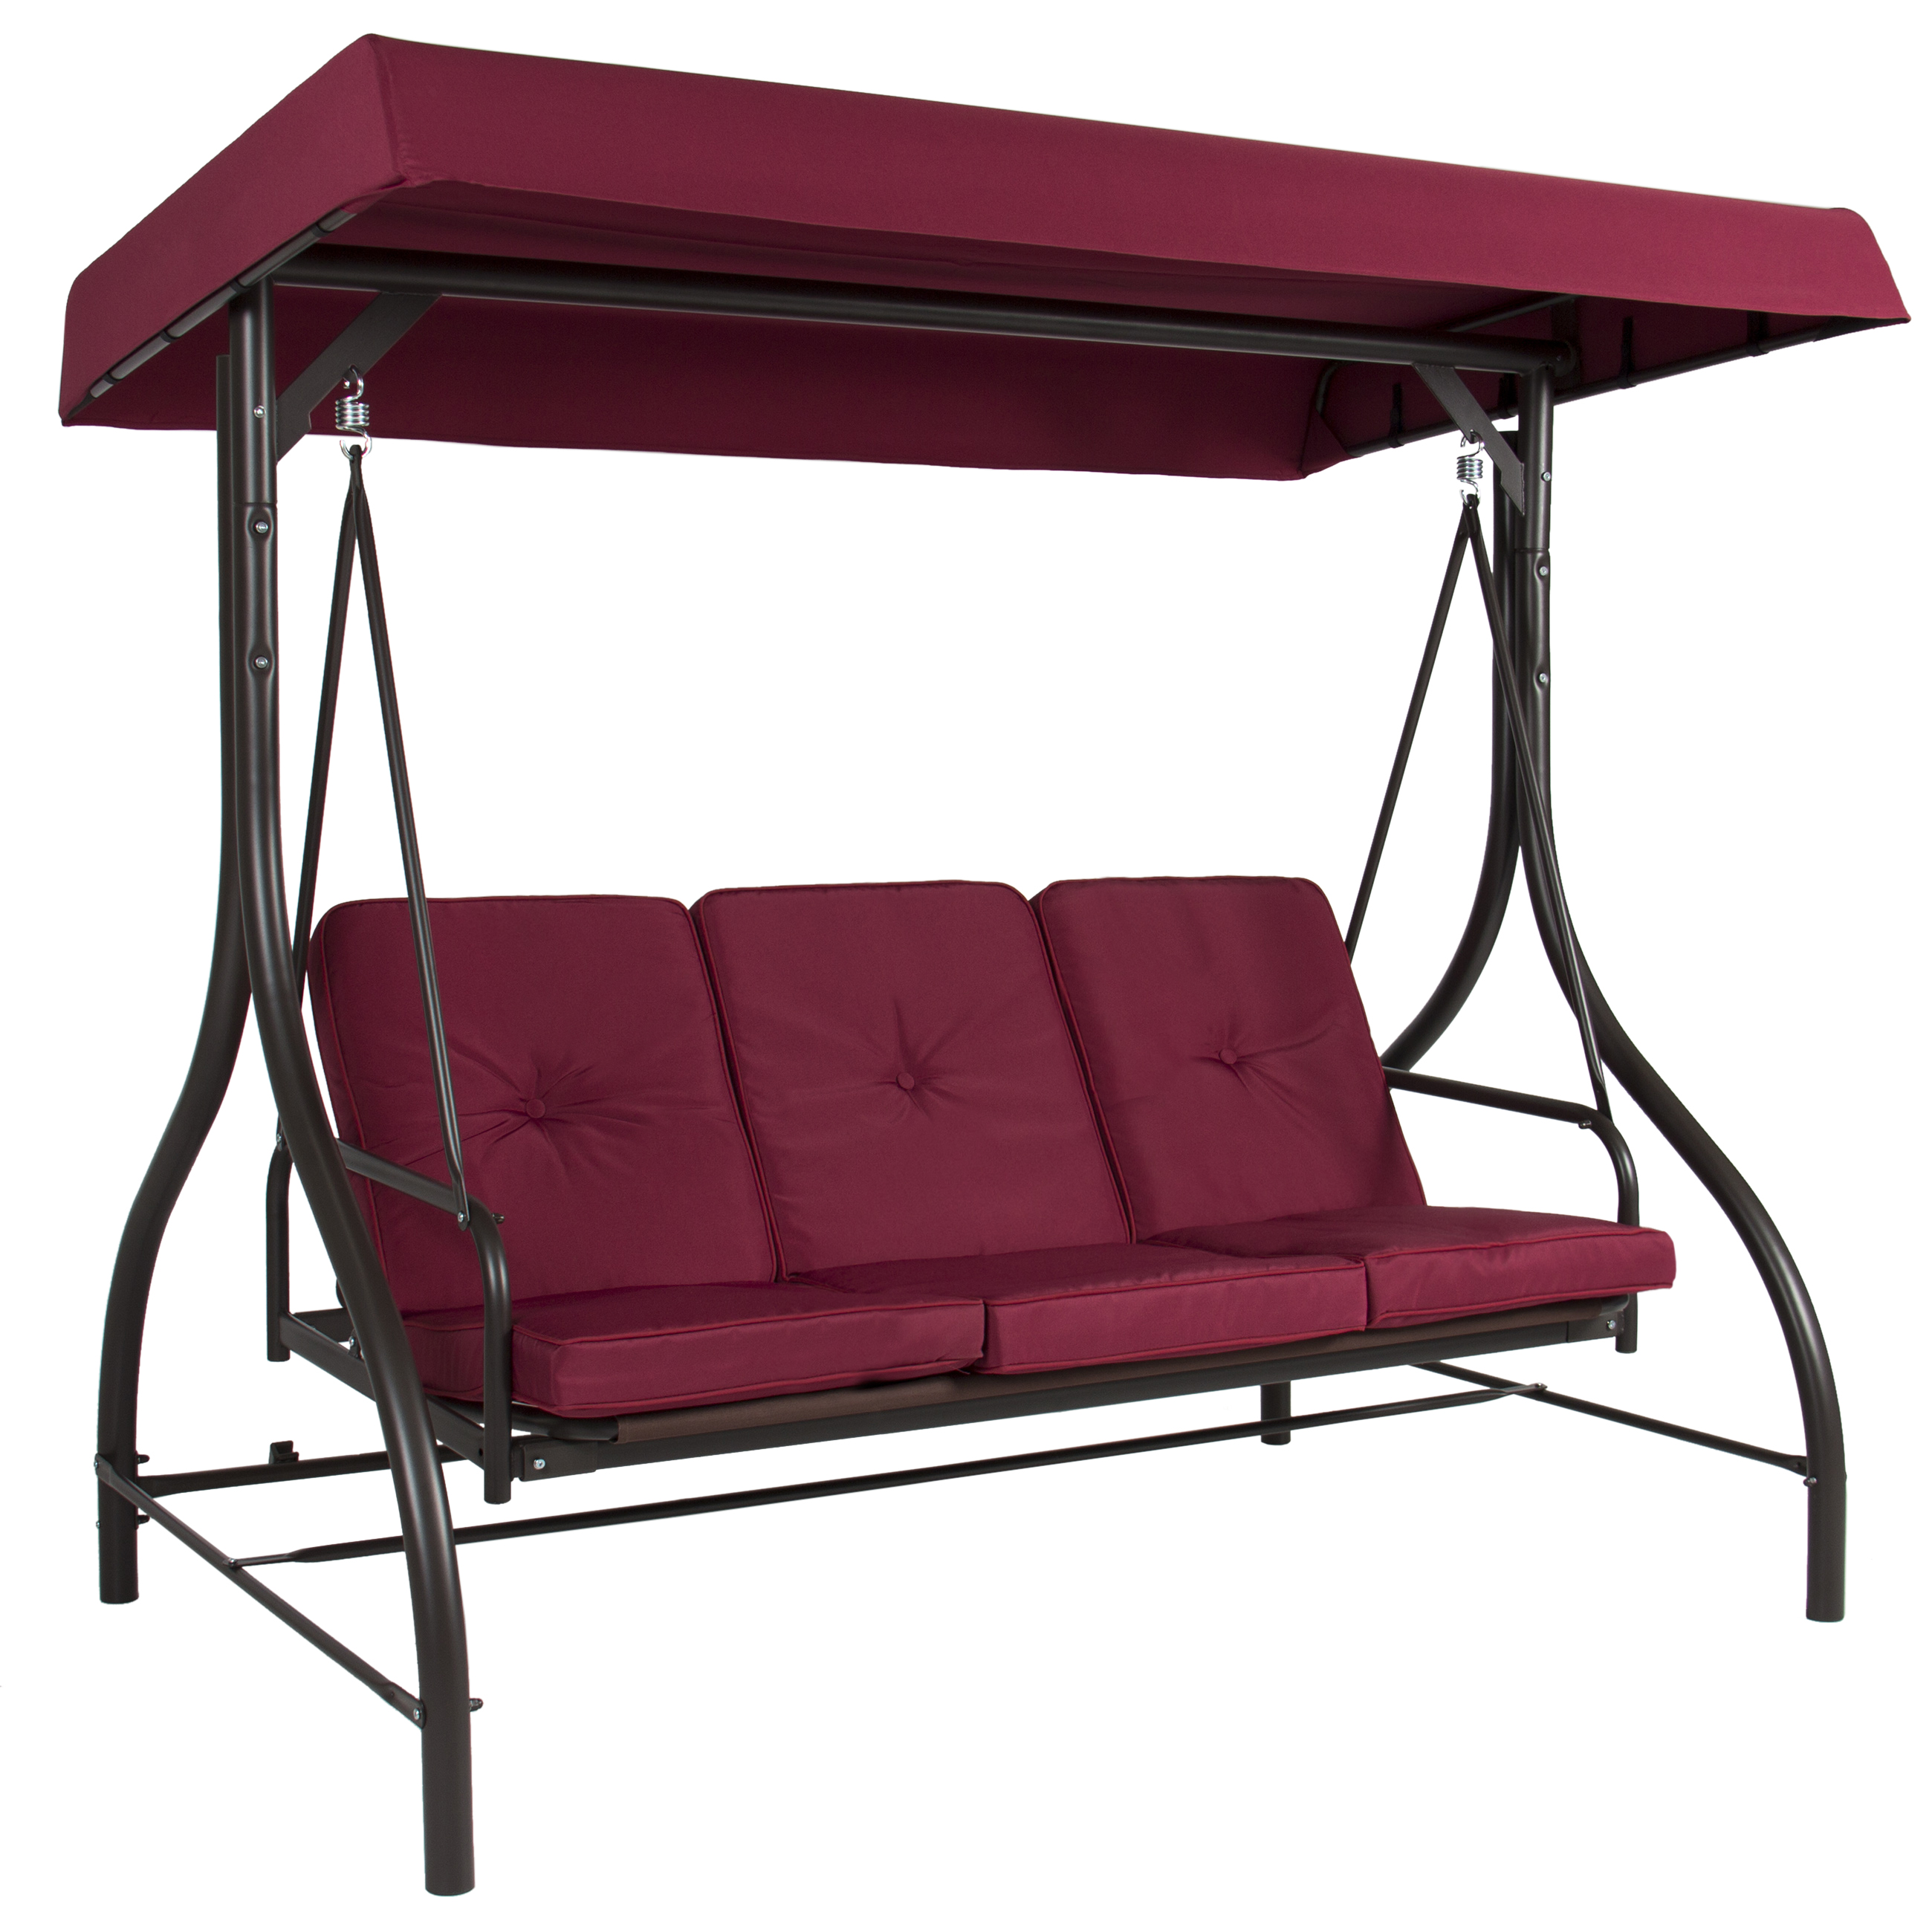 Best Choice Products 3-Seat Patio Porch Swing